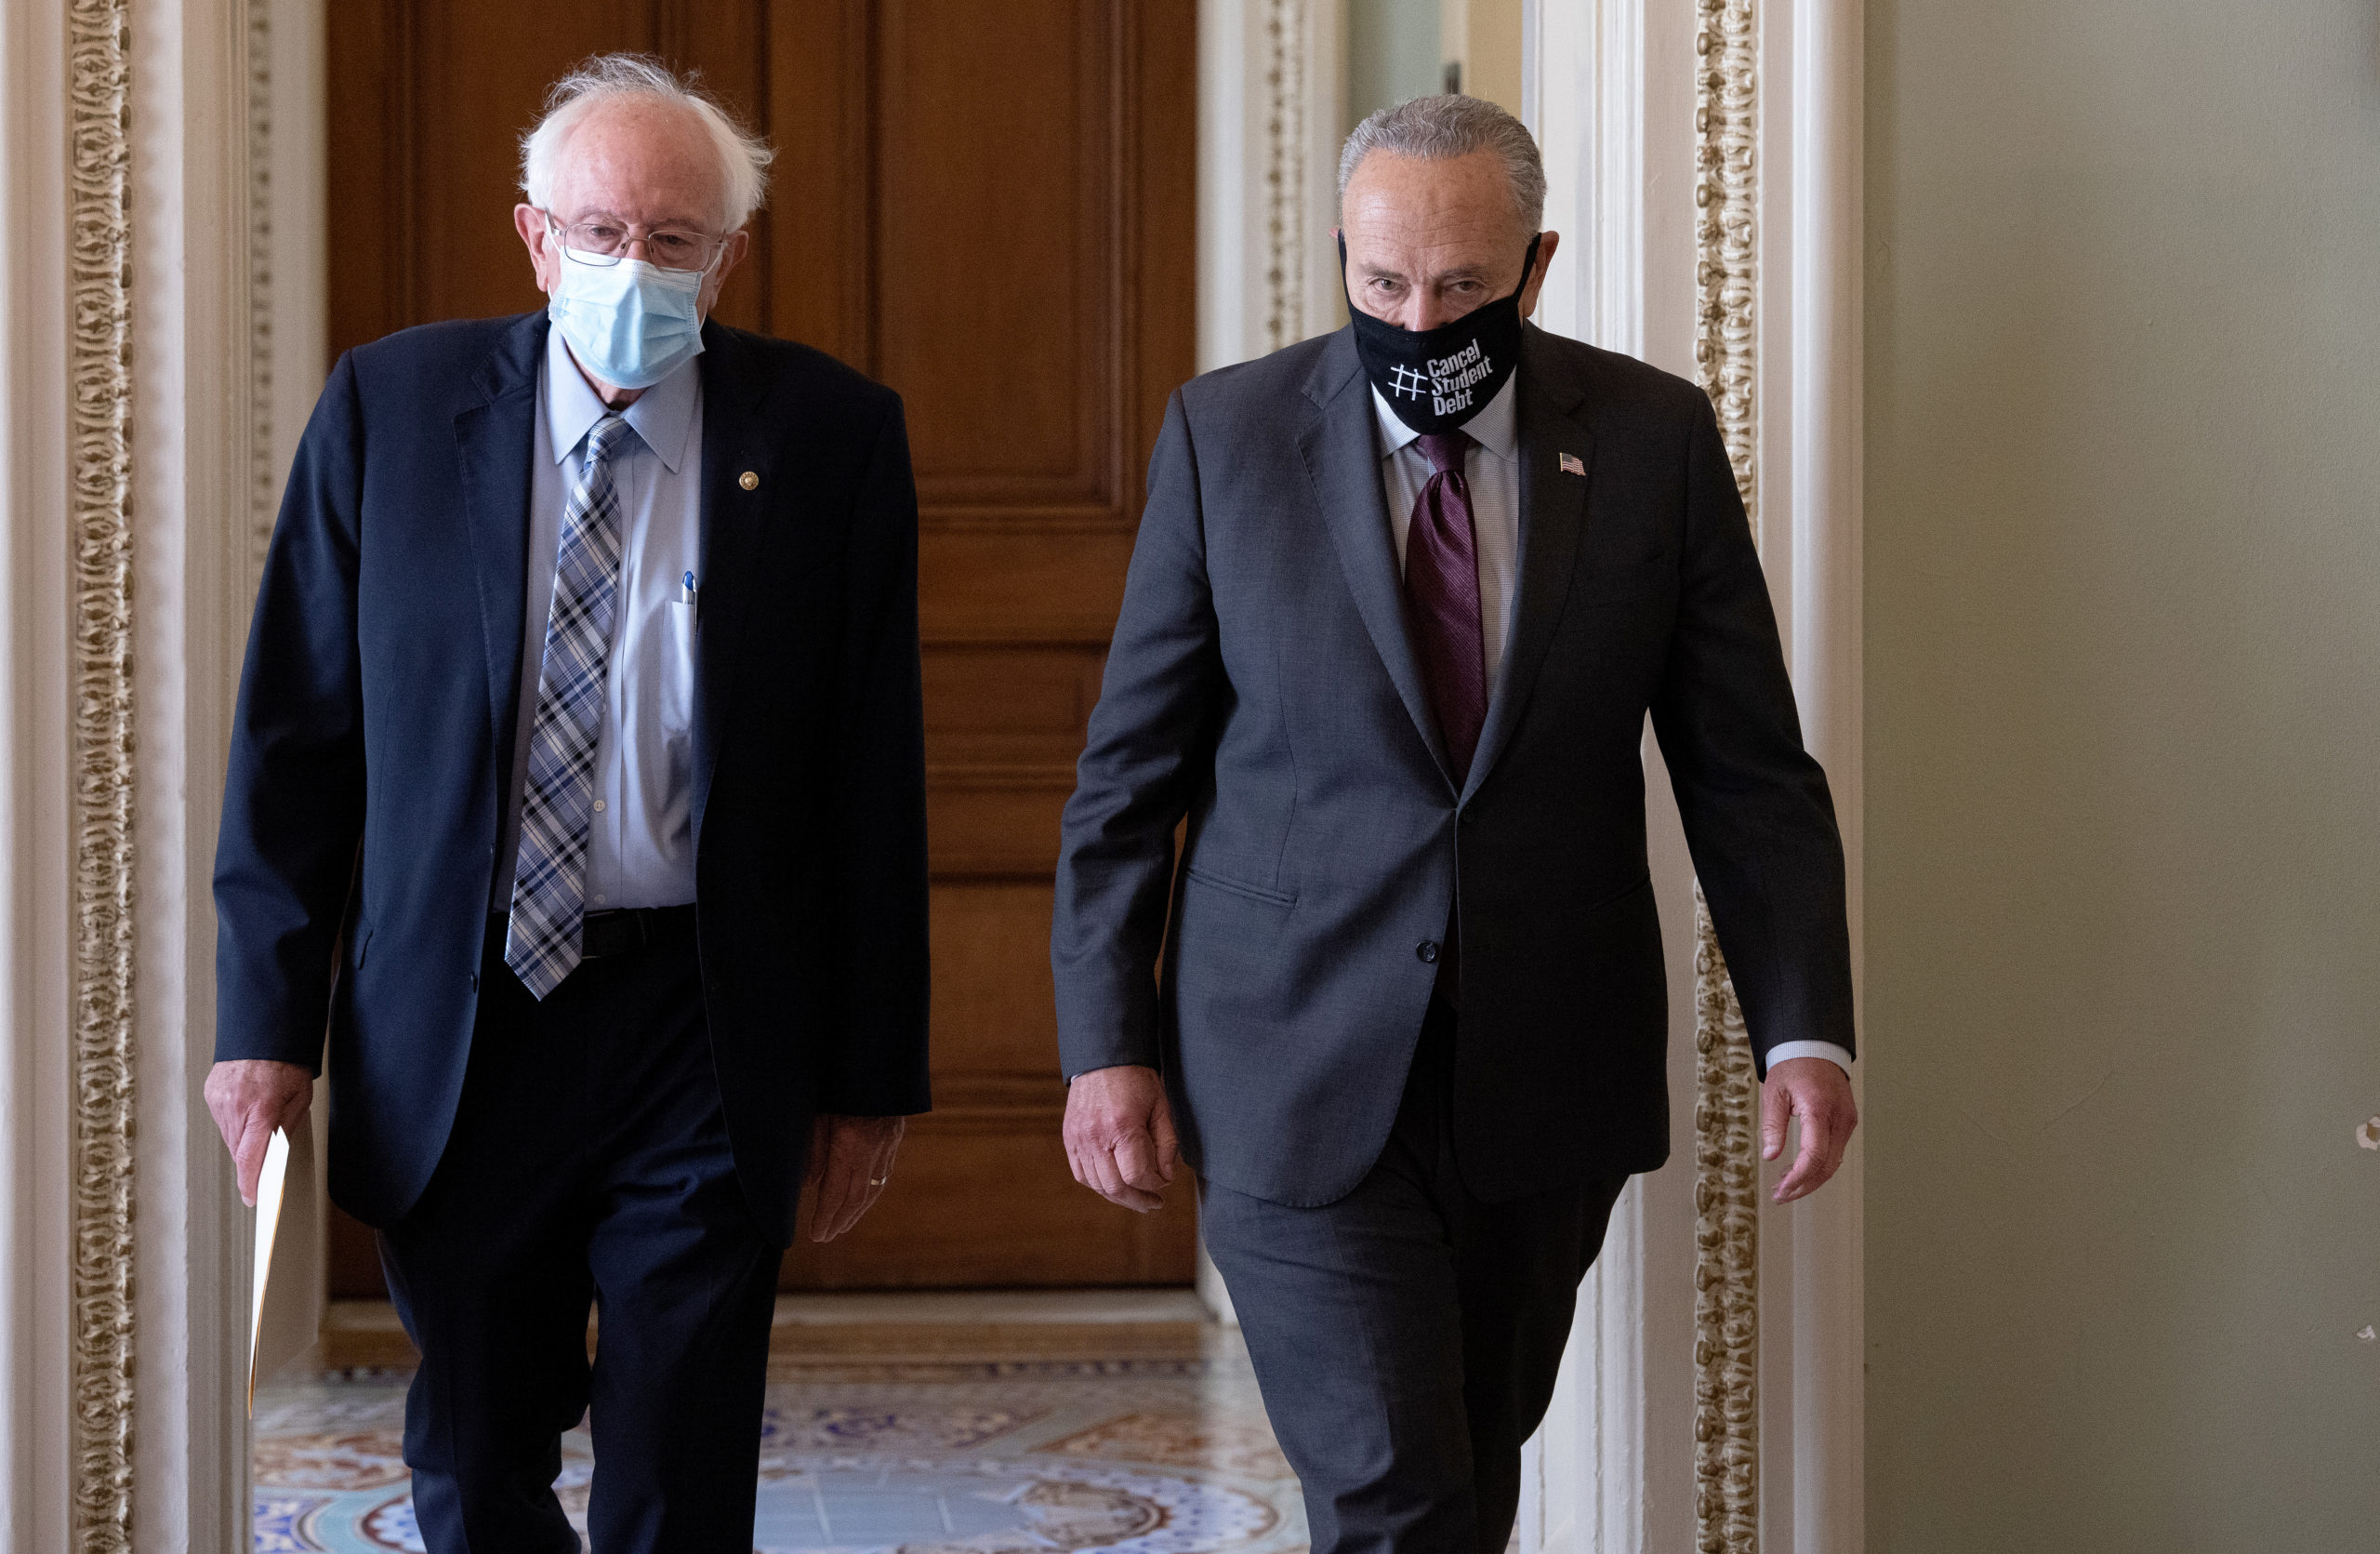 Sen. Bernie Sanders authored Democrats' $3.5 trillion budget, which he has acknowledged will likely pass on party lines. (Win McNamee/Getty Images)